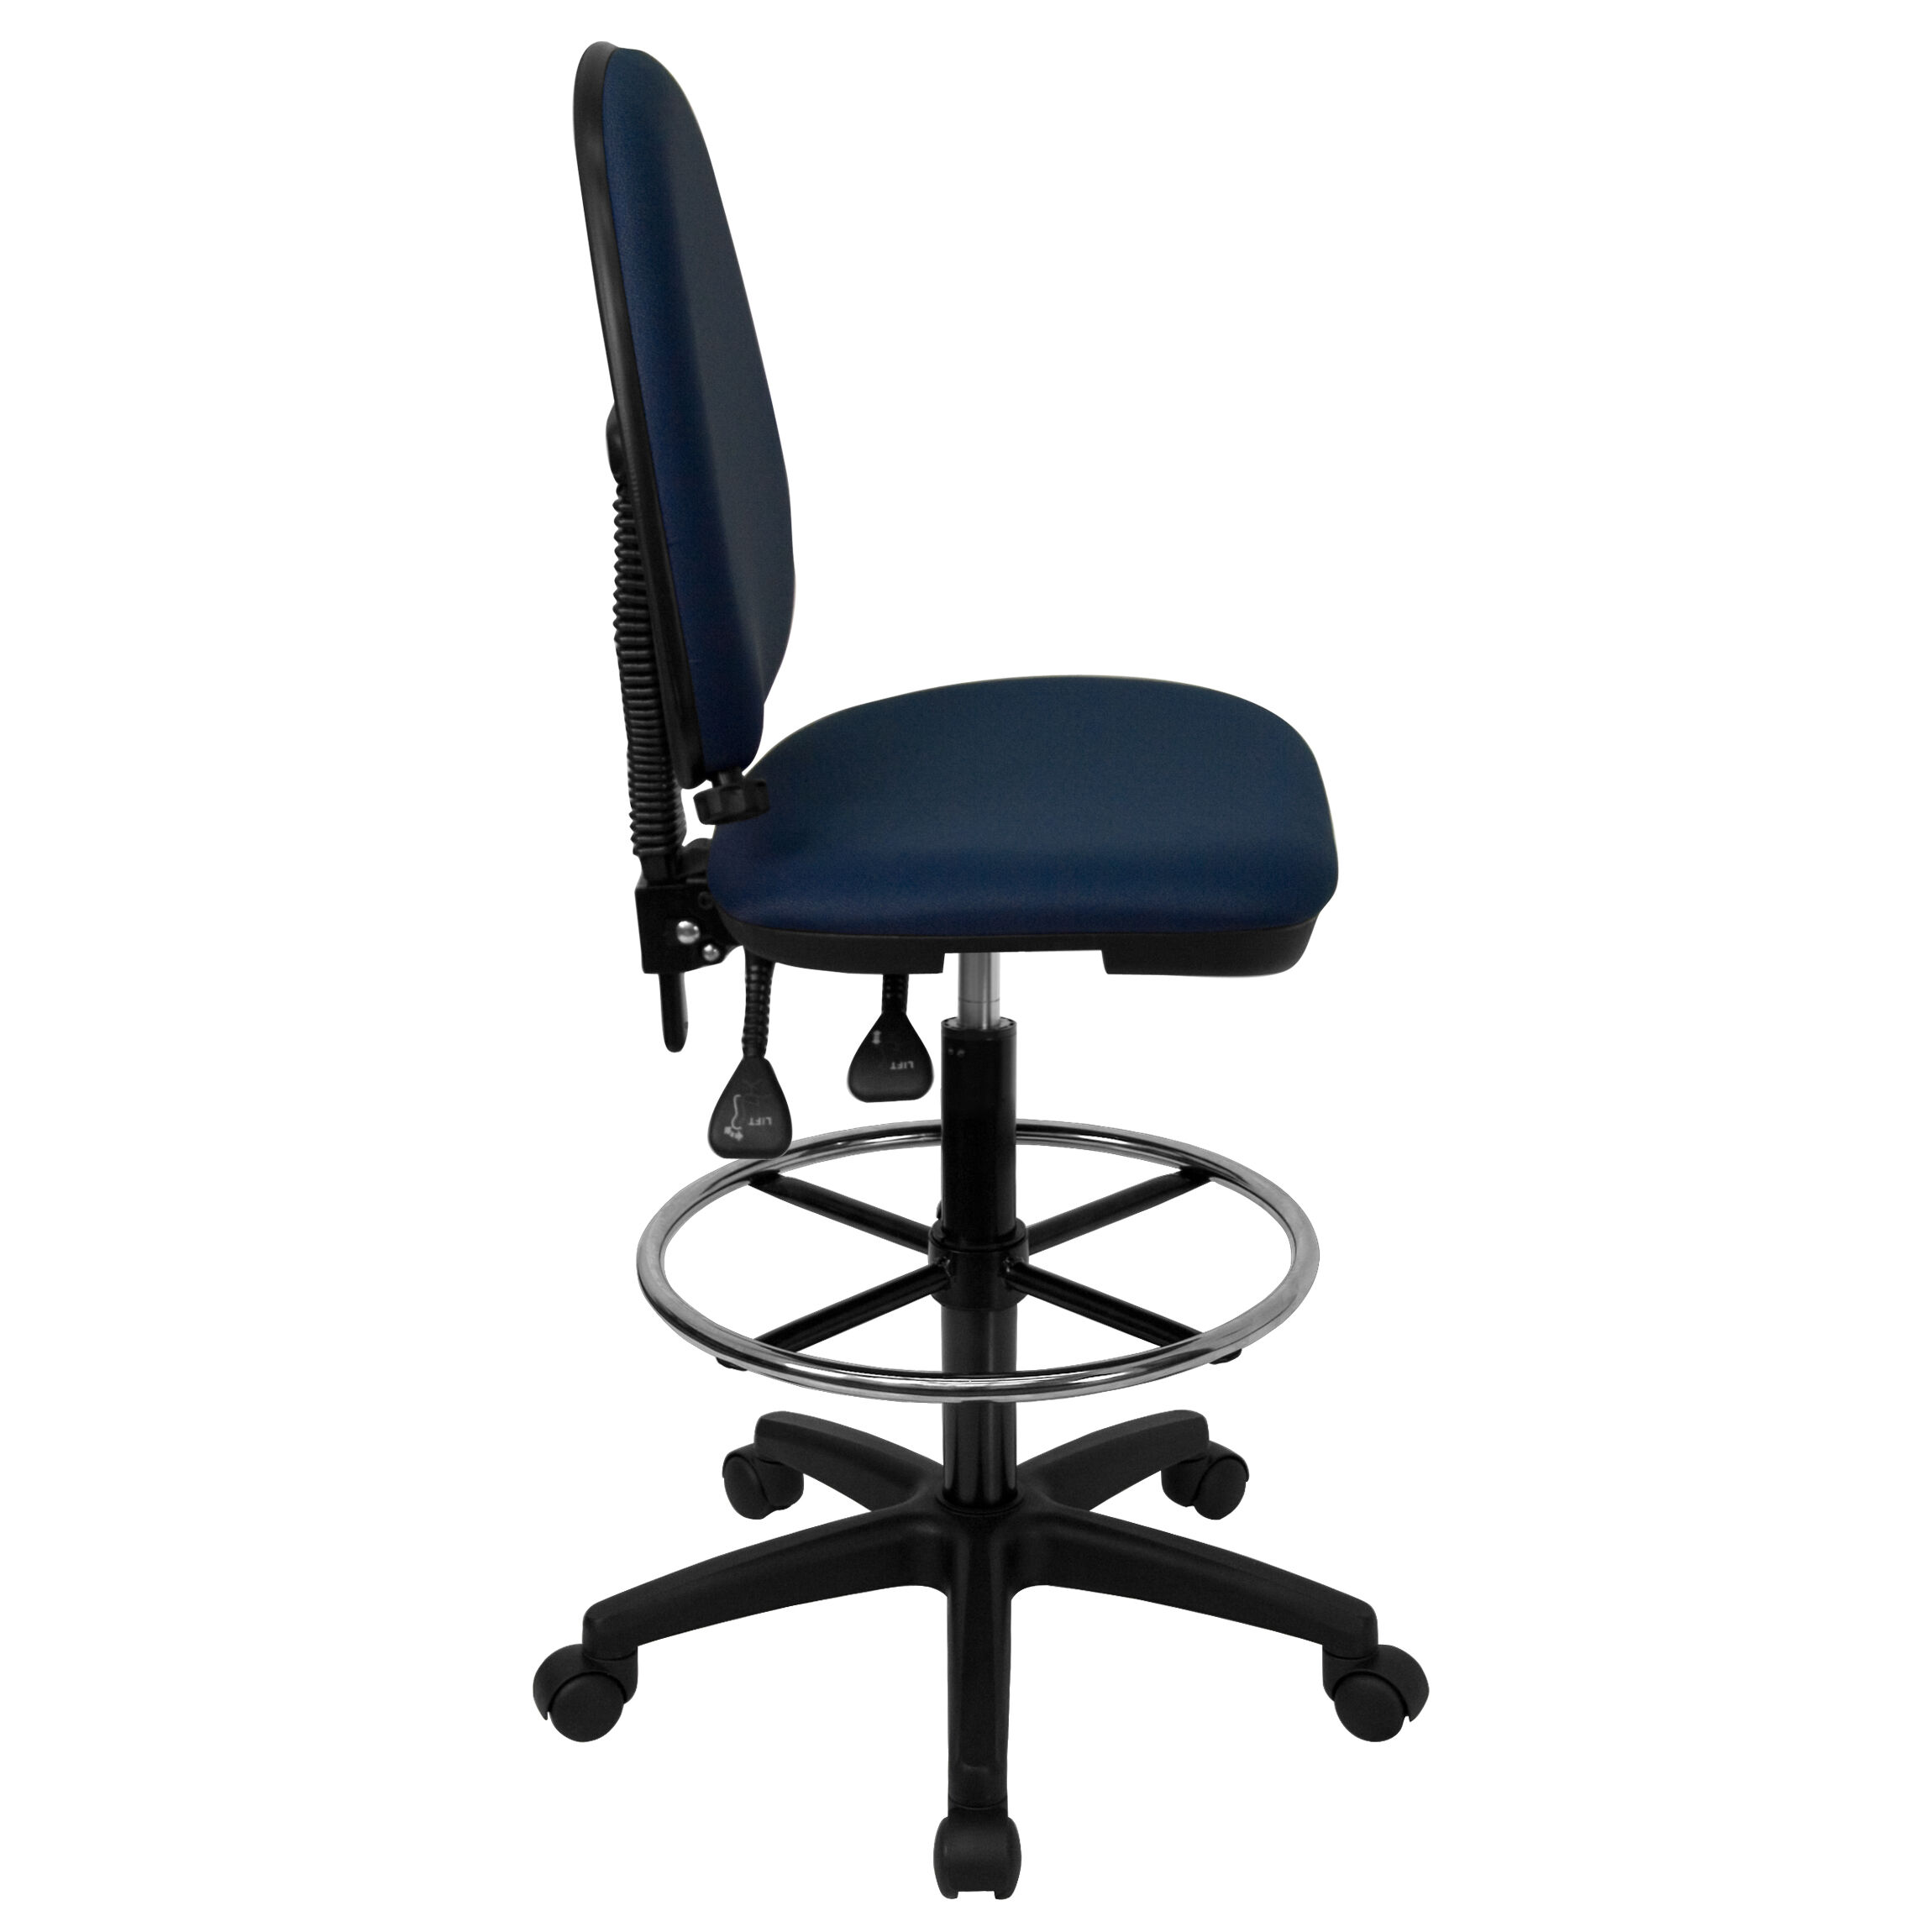 ... Our Mid Back Navy Blue Fabric Multifunction Drafting Chair With  Adjustable Lumbar Support Is On ...